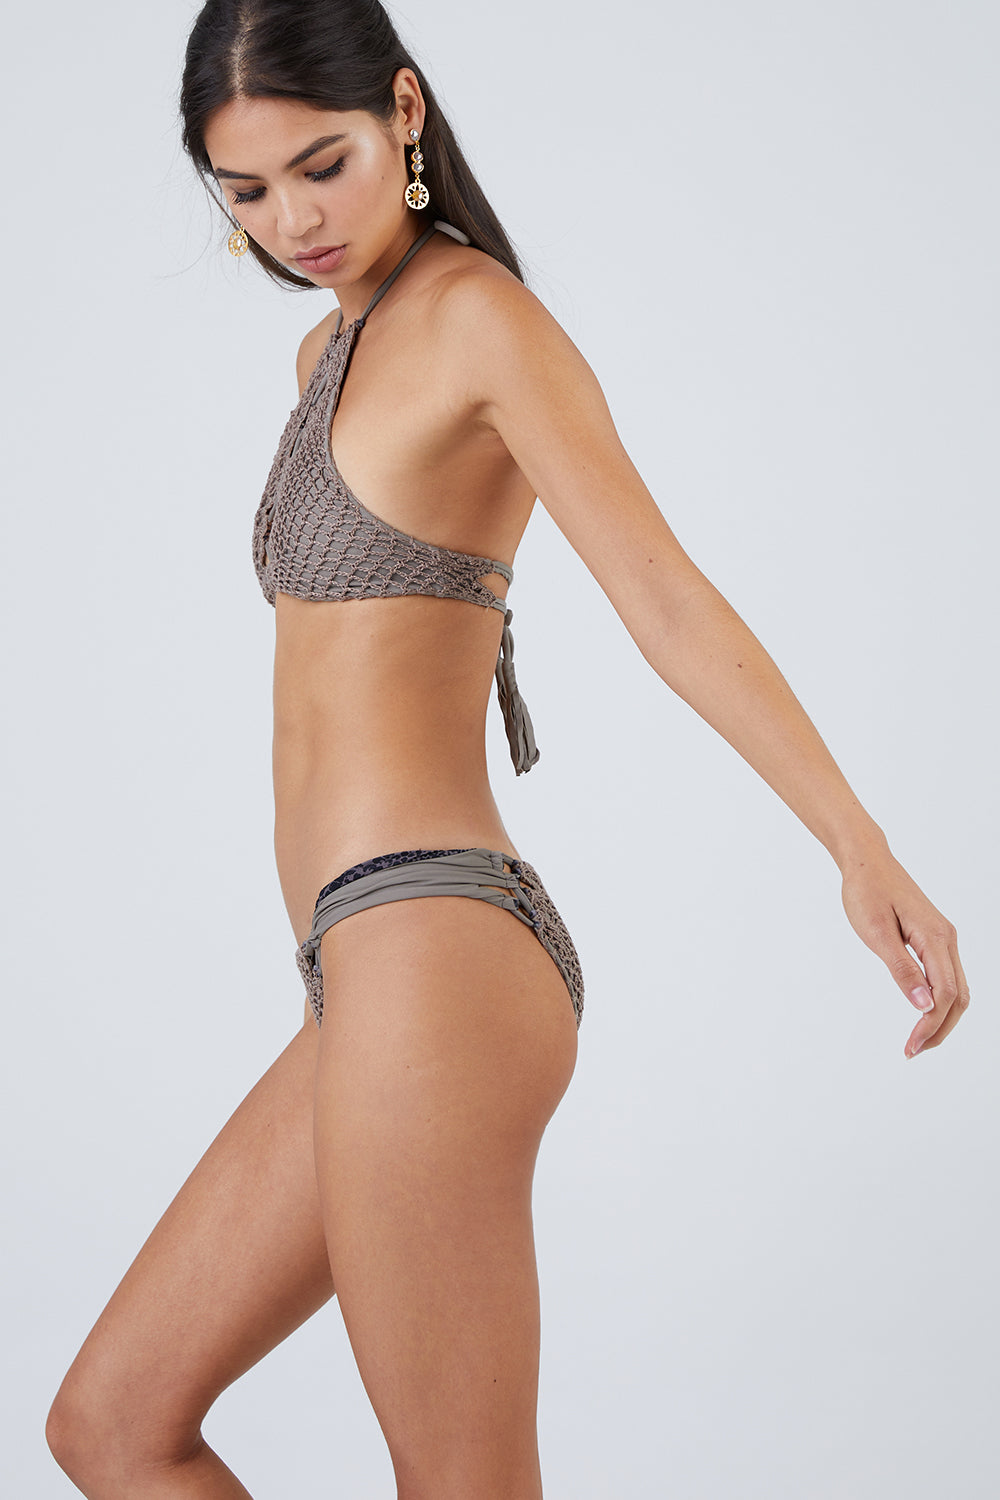 b4d0f63ae5bd5 ... ACACIA Papio Cheeky Crochet Bikini Bottom - Cement Grey - undefined  undefined